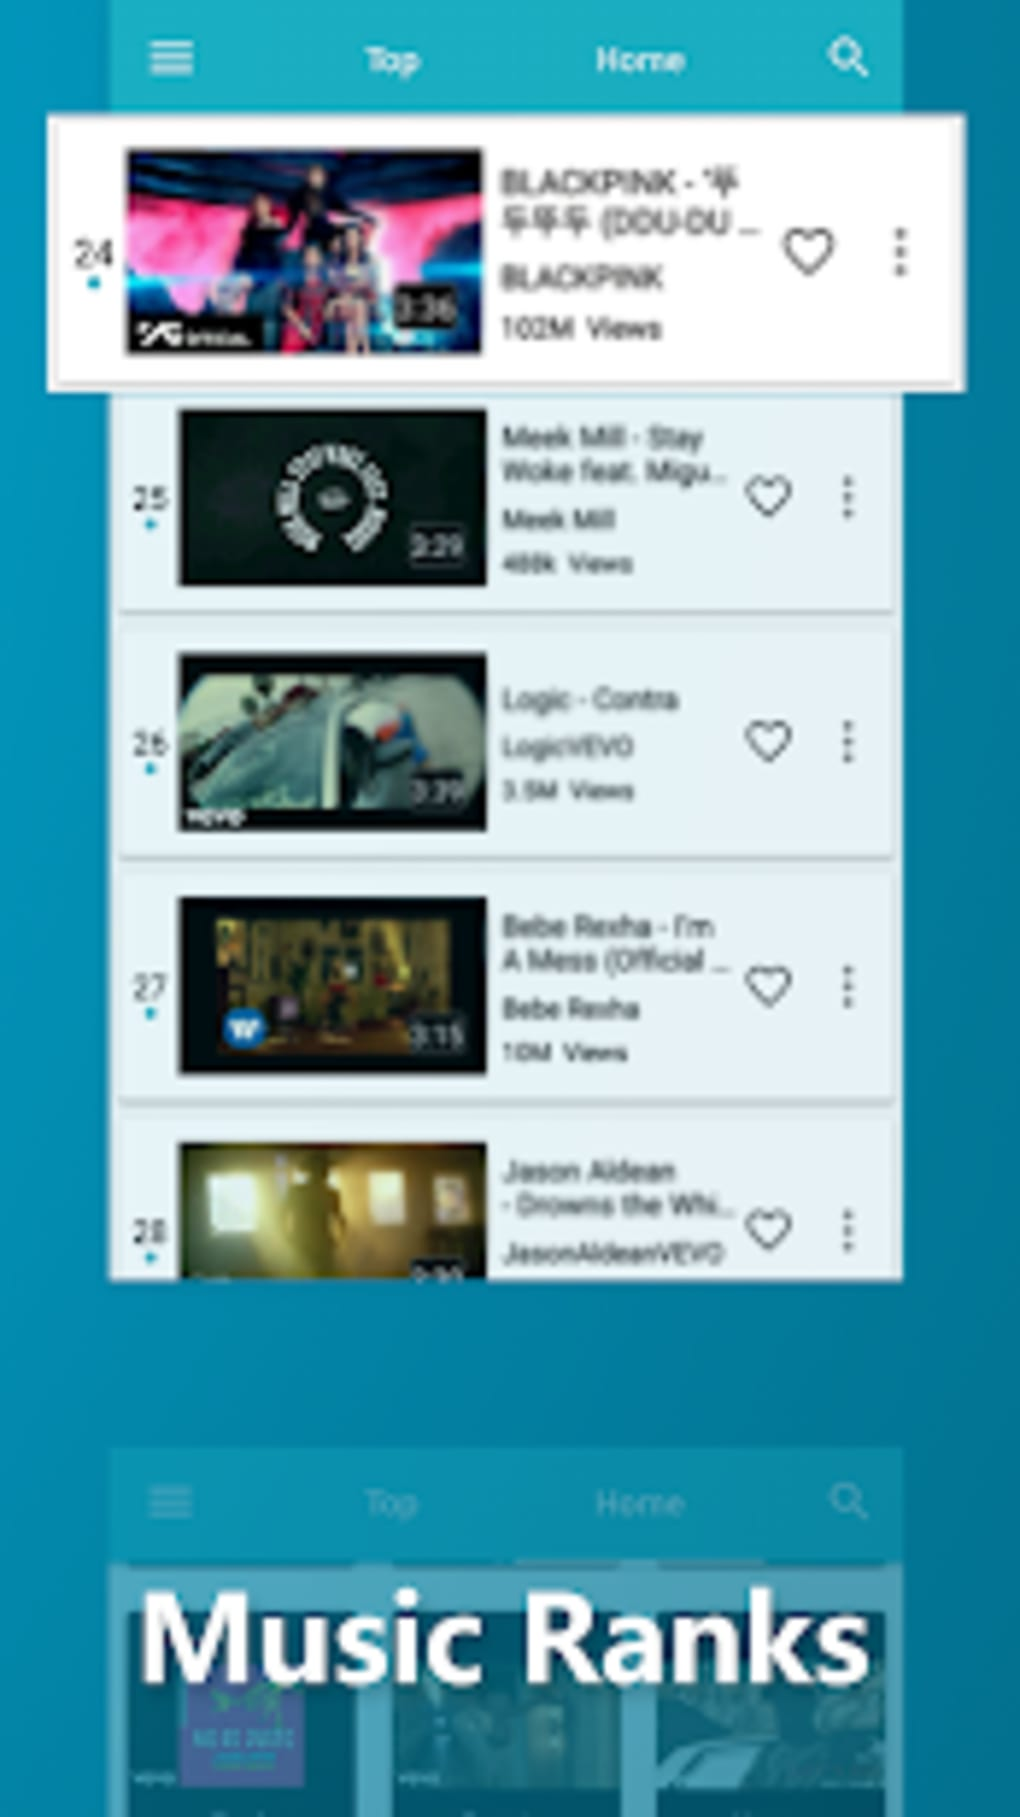 Blue Tunes - Wonderful Music Music Videos App for Android - Download